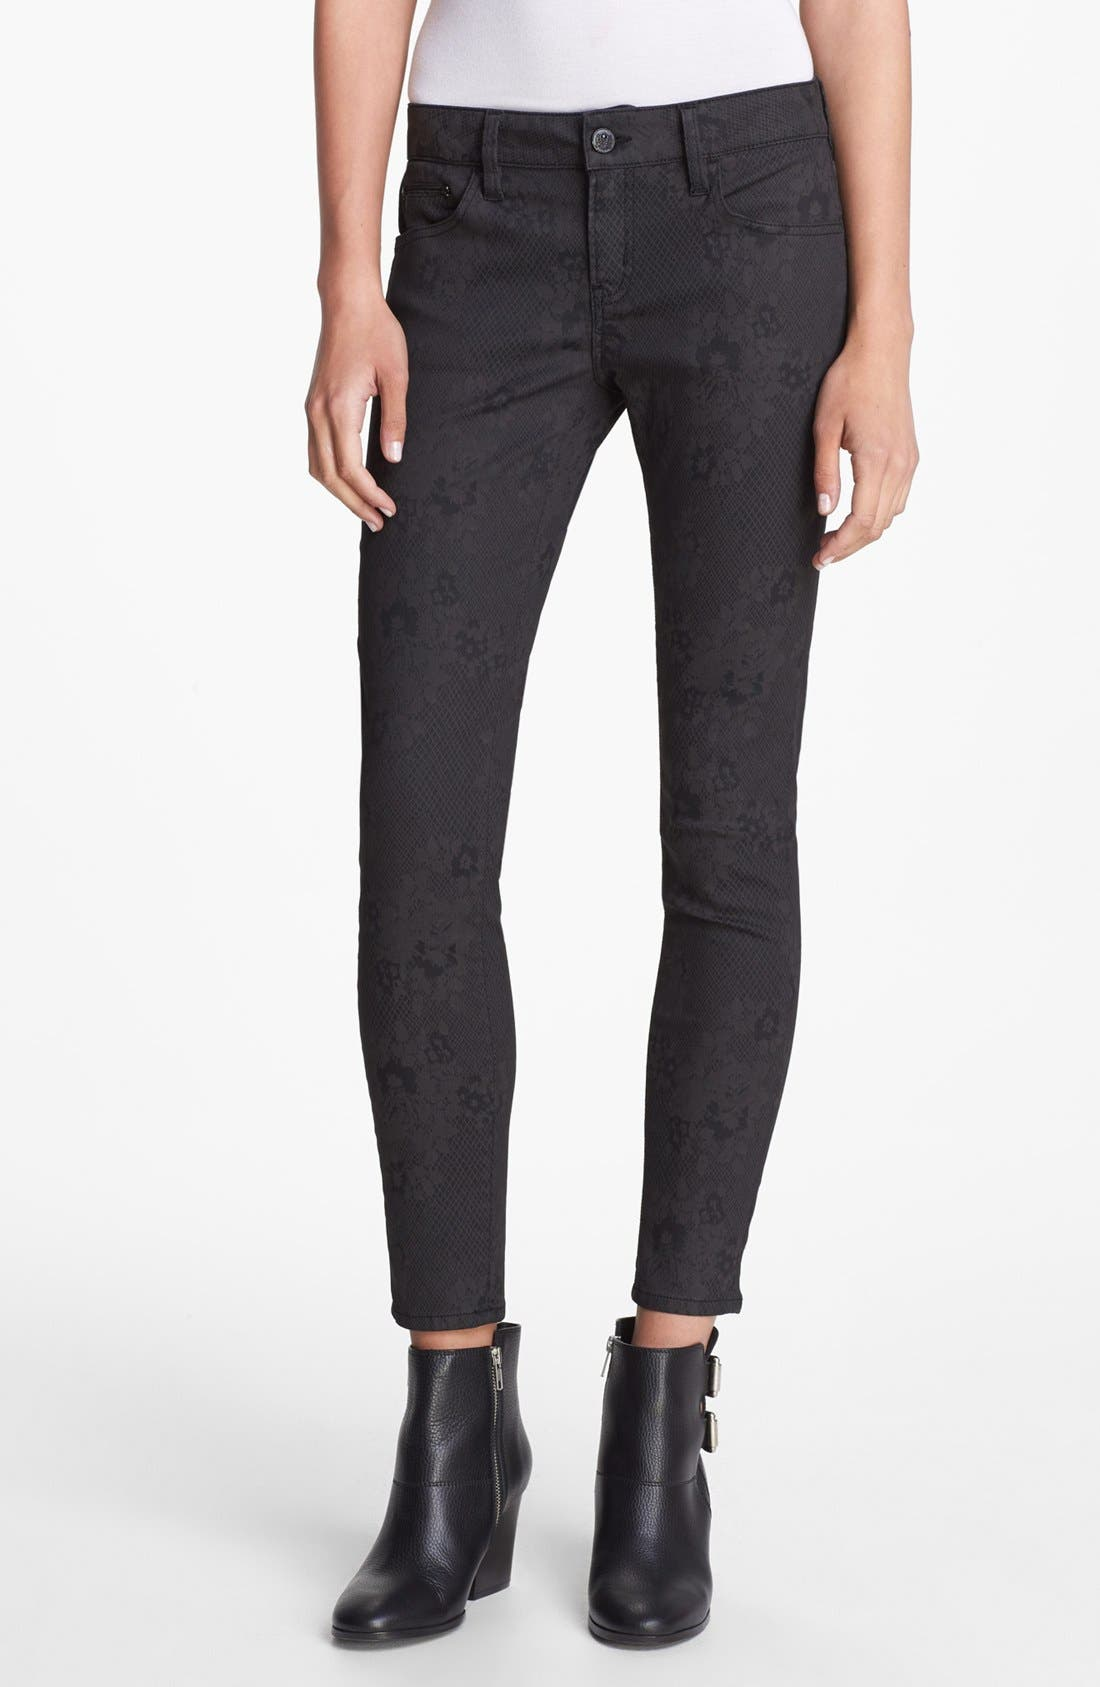 Alternate Image 1 Selected - The Kooples Skinny Print Stretch Jeans